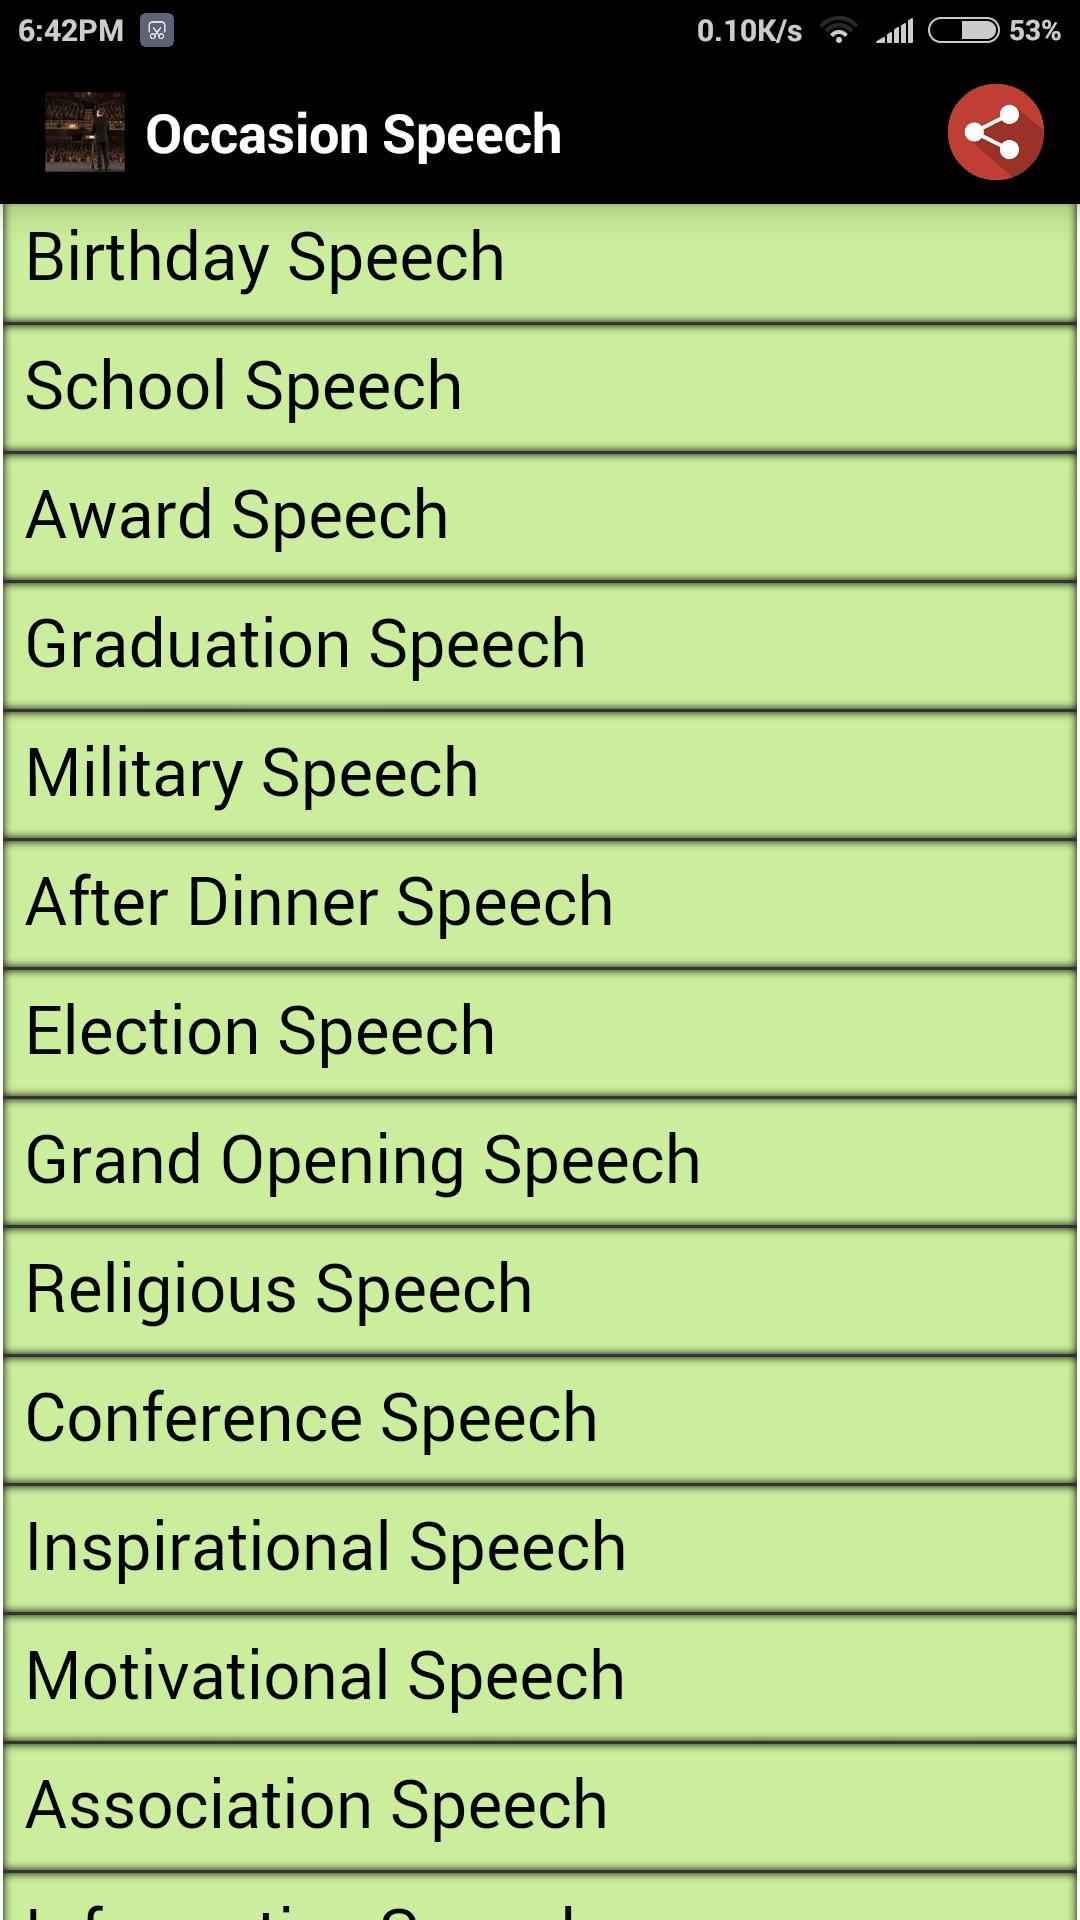 Occasion Speech for Android - APK Download